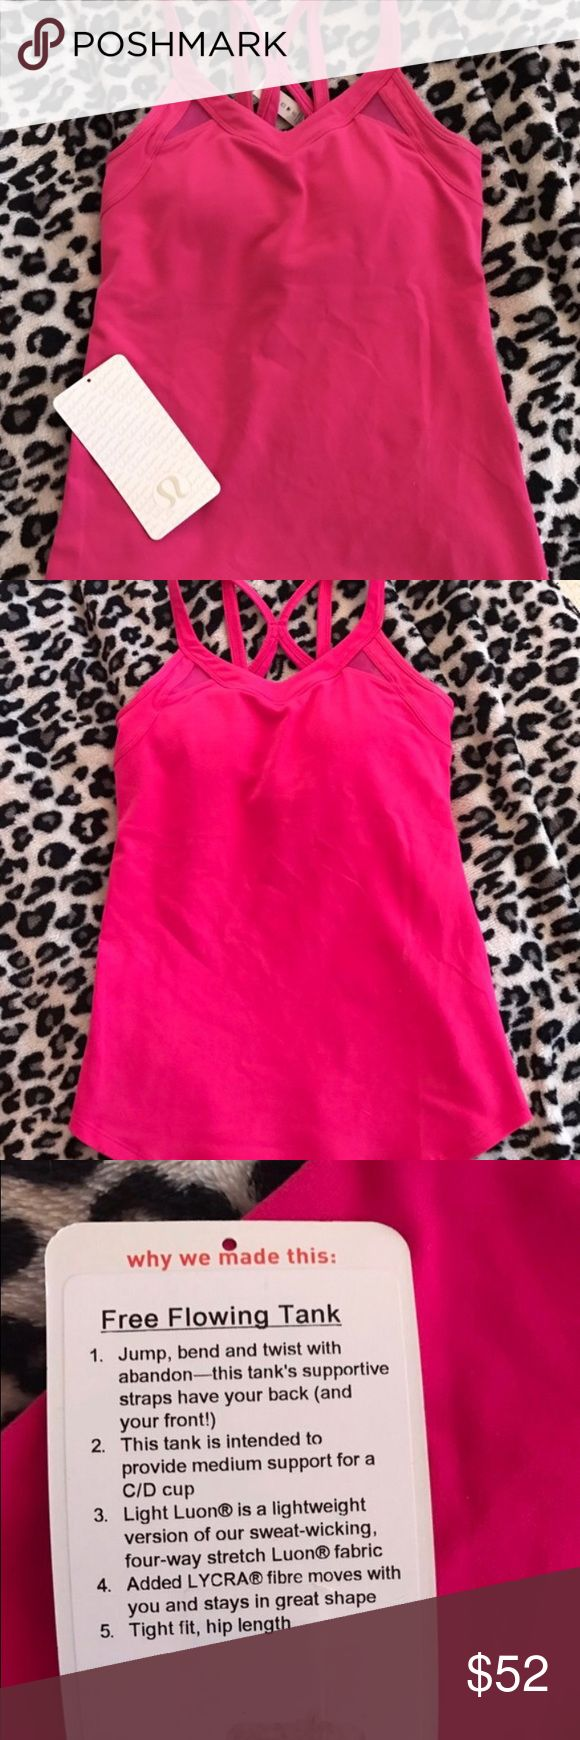 Adorable Lululemon Free Flowing Tank NWT Size 4 Super cute Lululemon tank in size 4, beautiful hot  pink color, built in bra, form fitting, and mesh paneling. New with detached tags. Never been worn, Runs small. Open to trades bundle lululemon athletica Tops Tank Tops